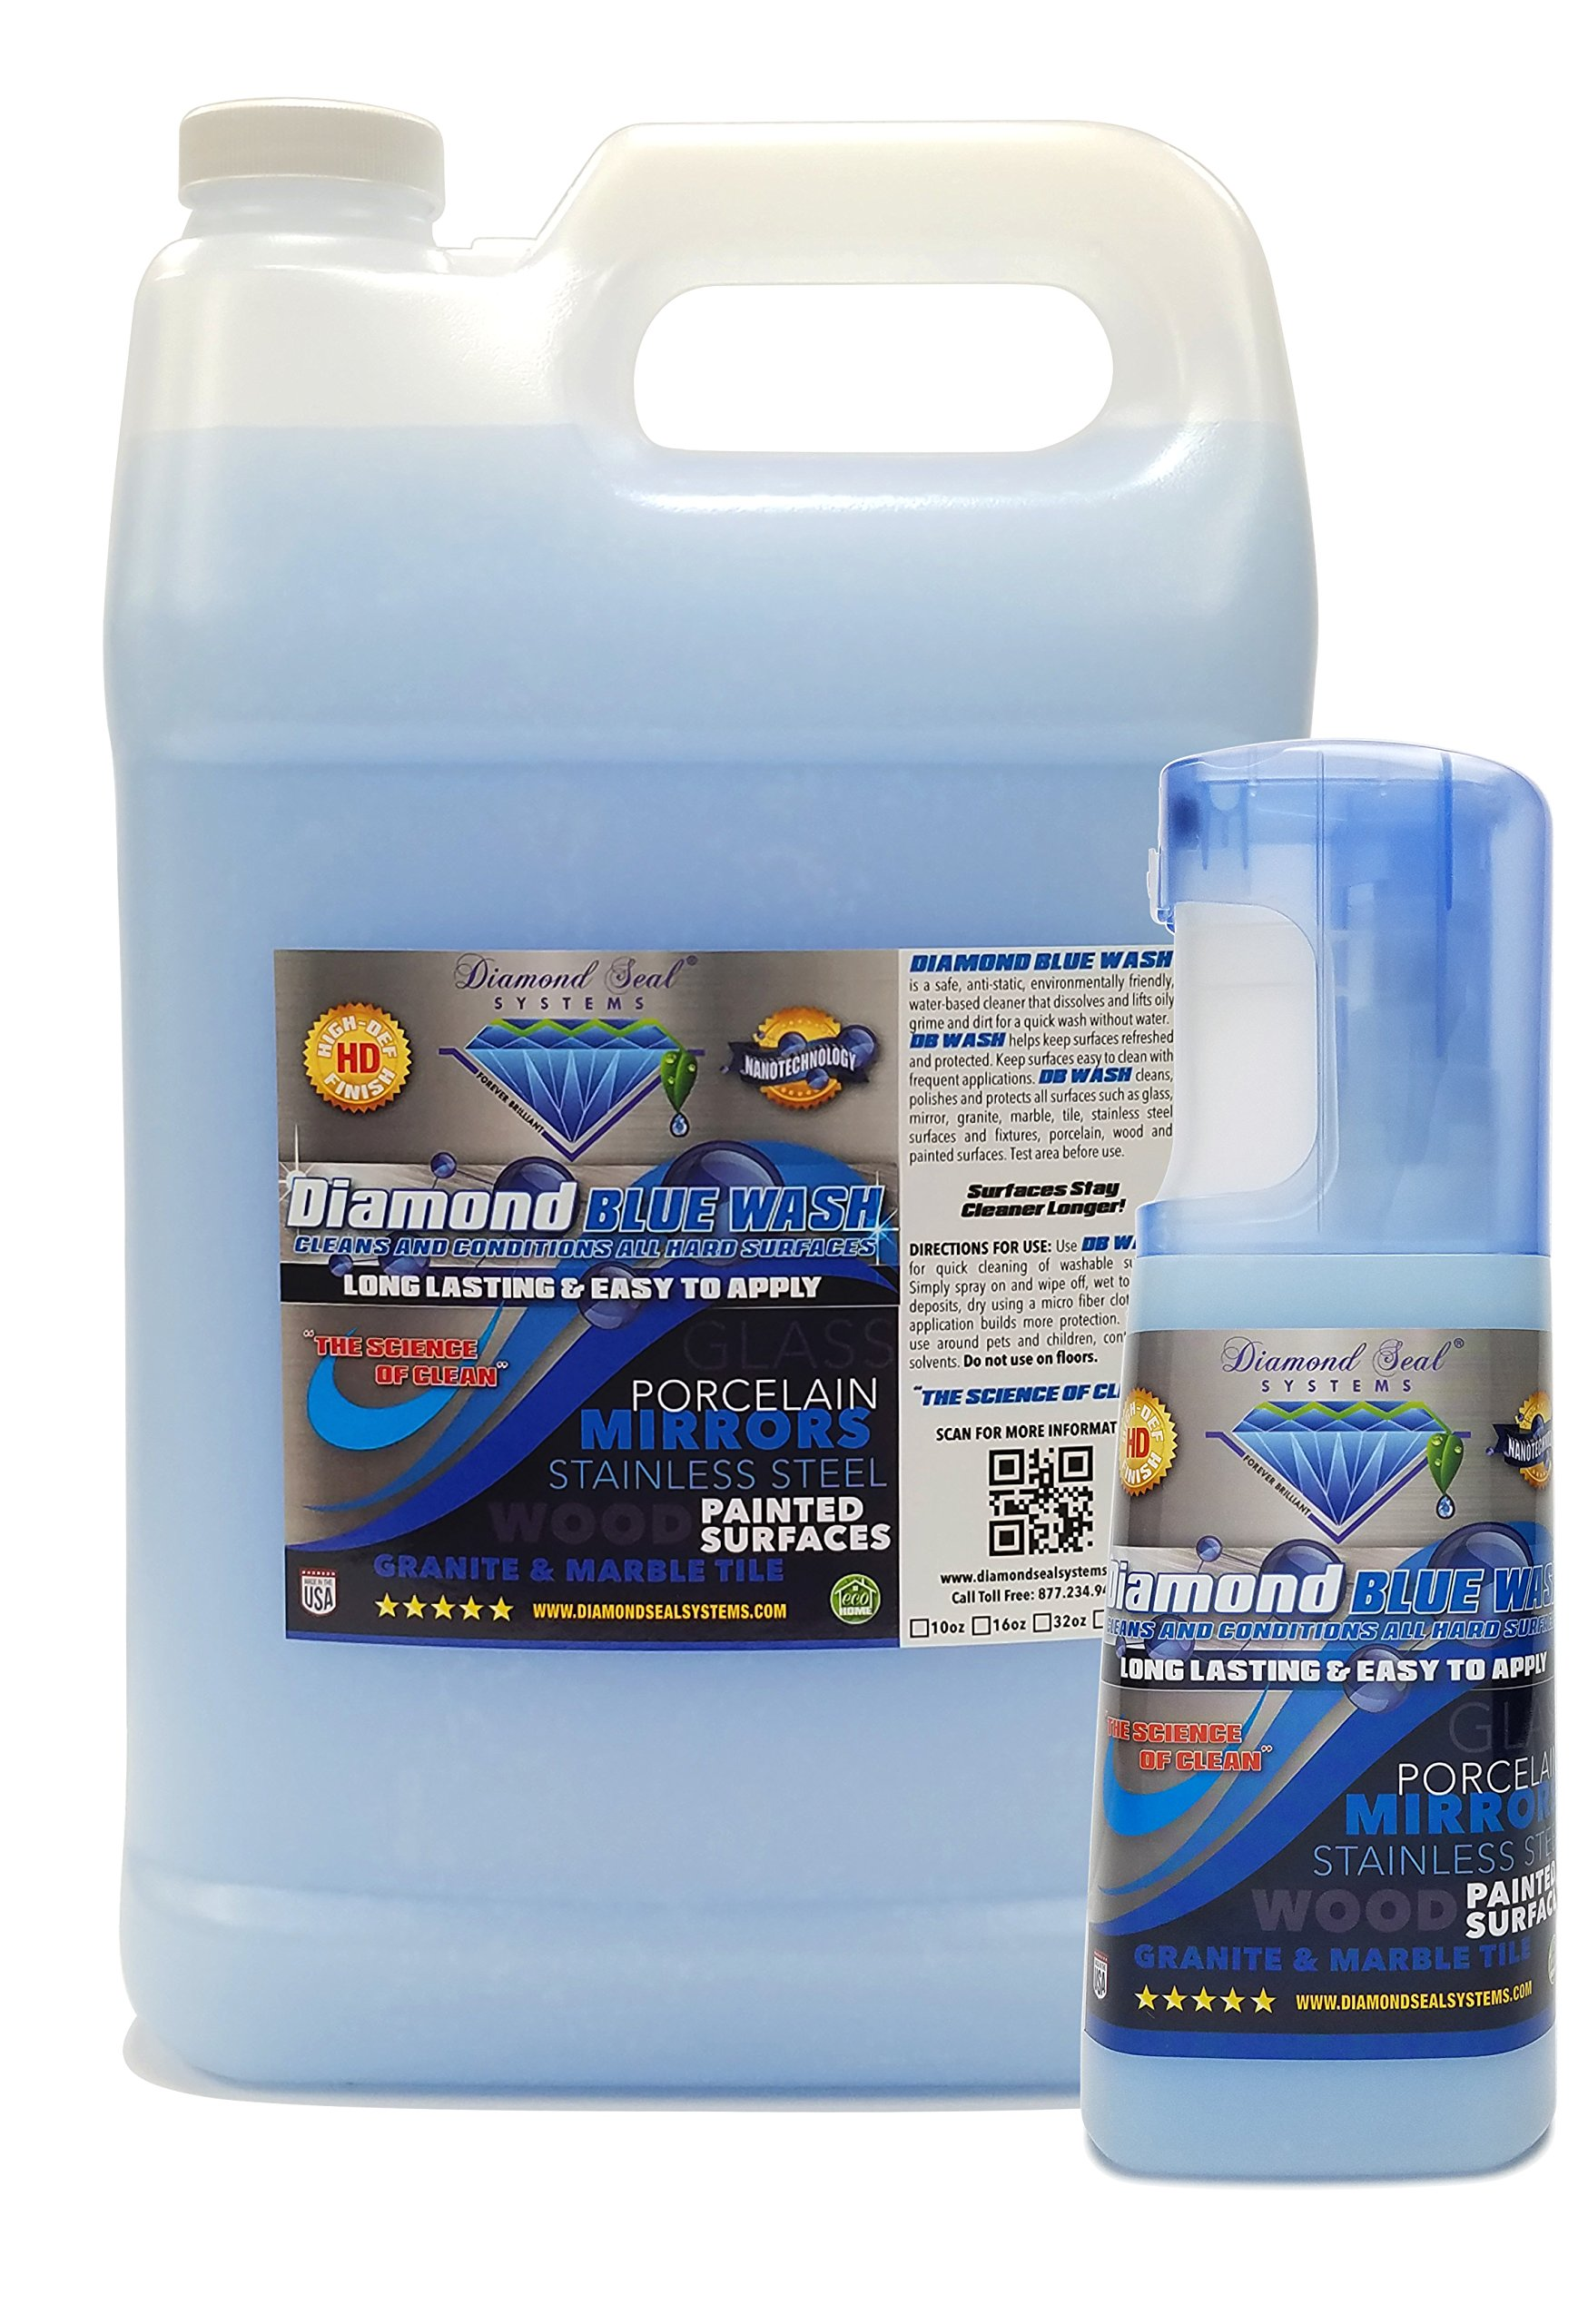 Diamond Blue Wash Repellent Cleaner 1 Gallon comes with a full Free 10 Oz Spray Bottle Direct From the Manufacturer